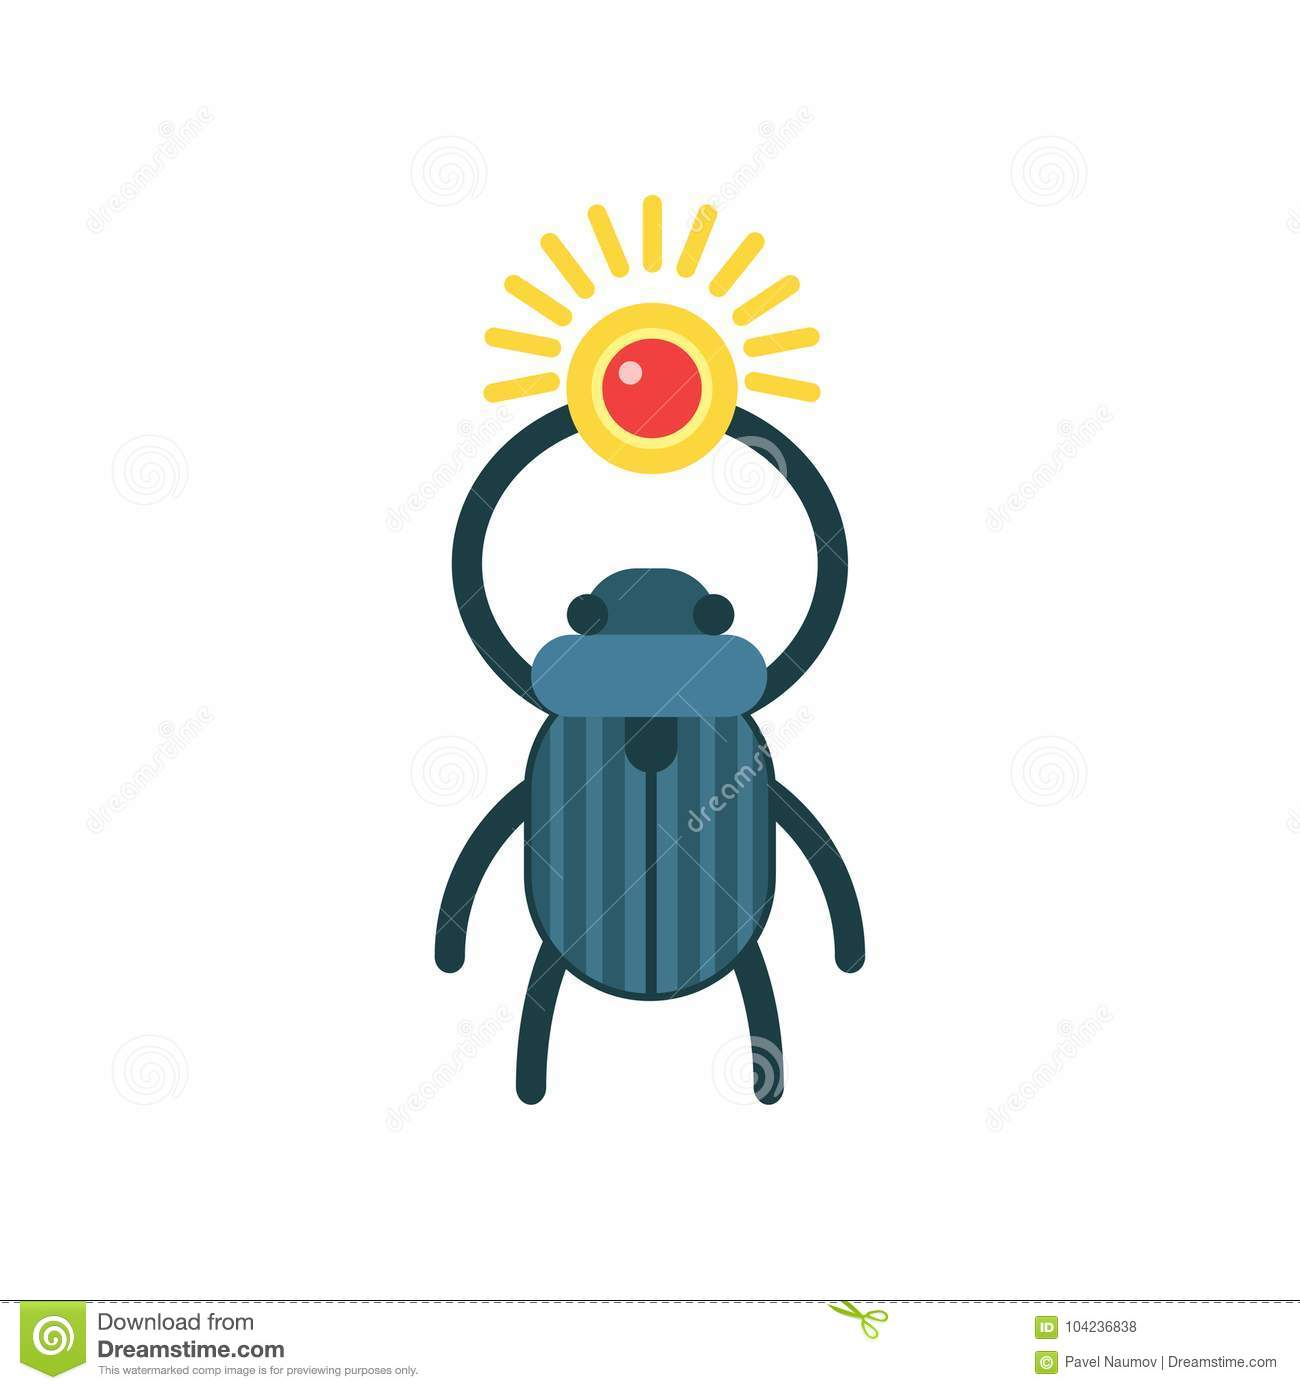 beetle scarab with sun symbol of ancient egypt traditional rh dreamstime com Free Sun Graphics Free Mountain Vector